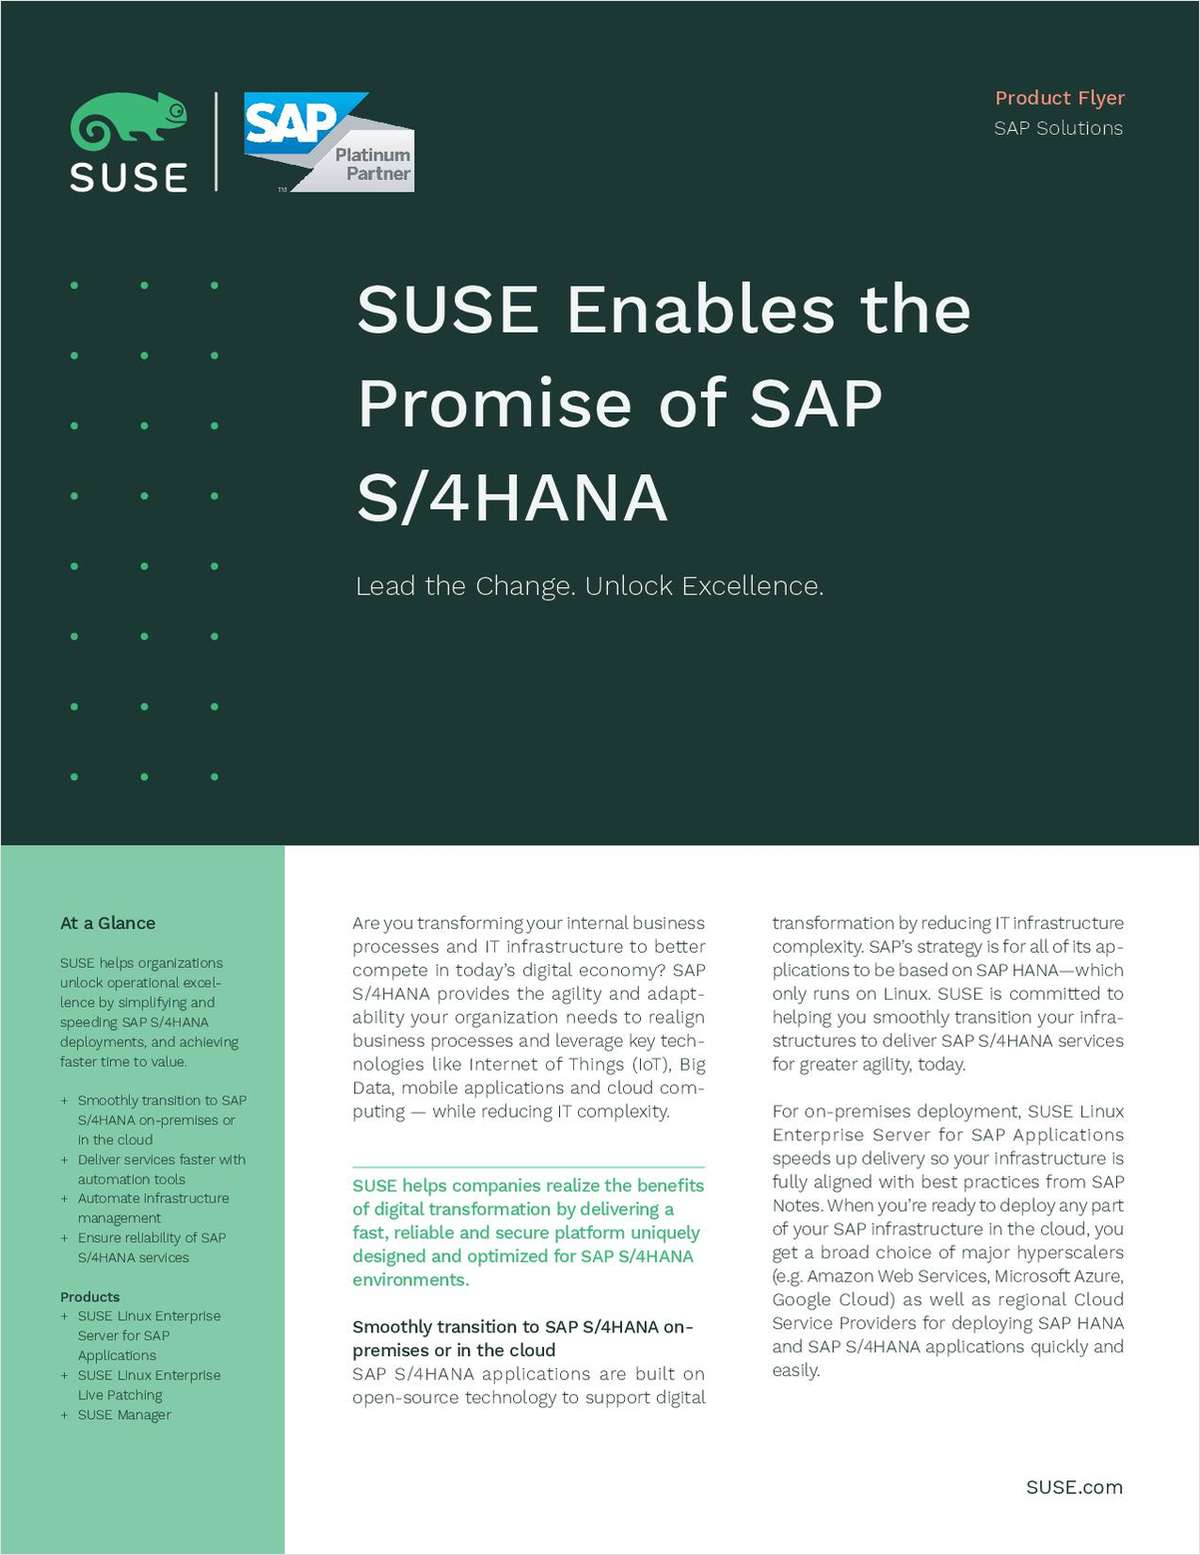 SUSE Enables the Promise of SAP S/4HANA